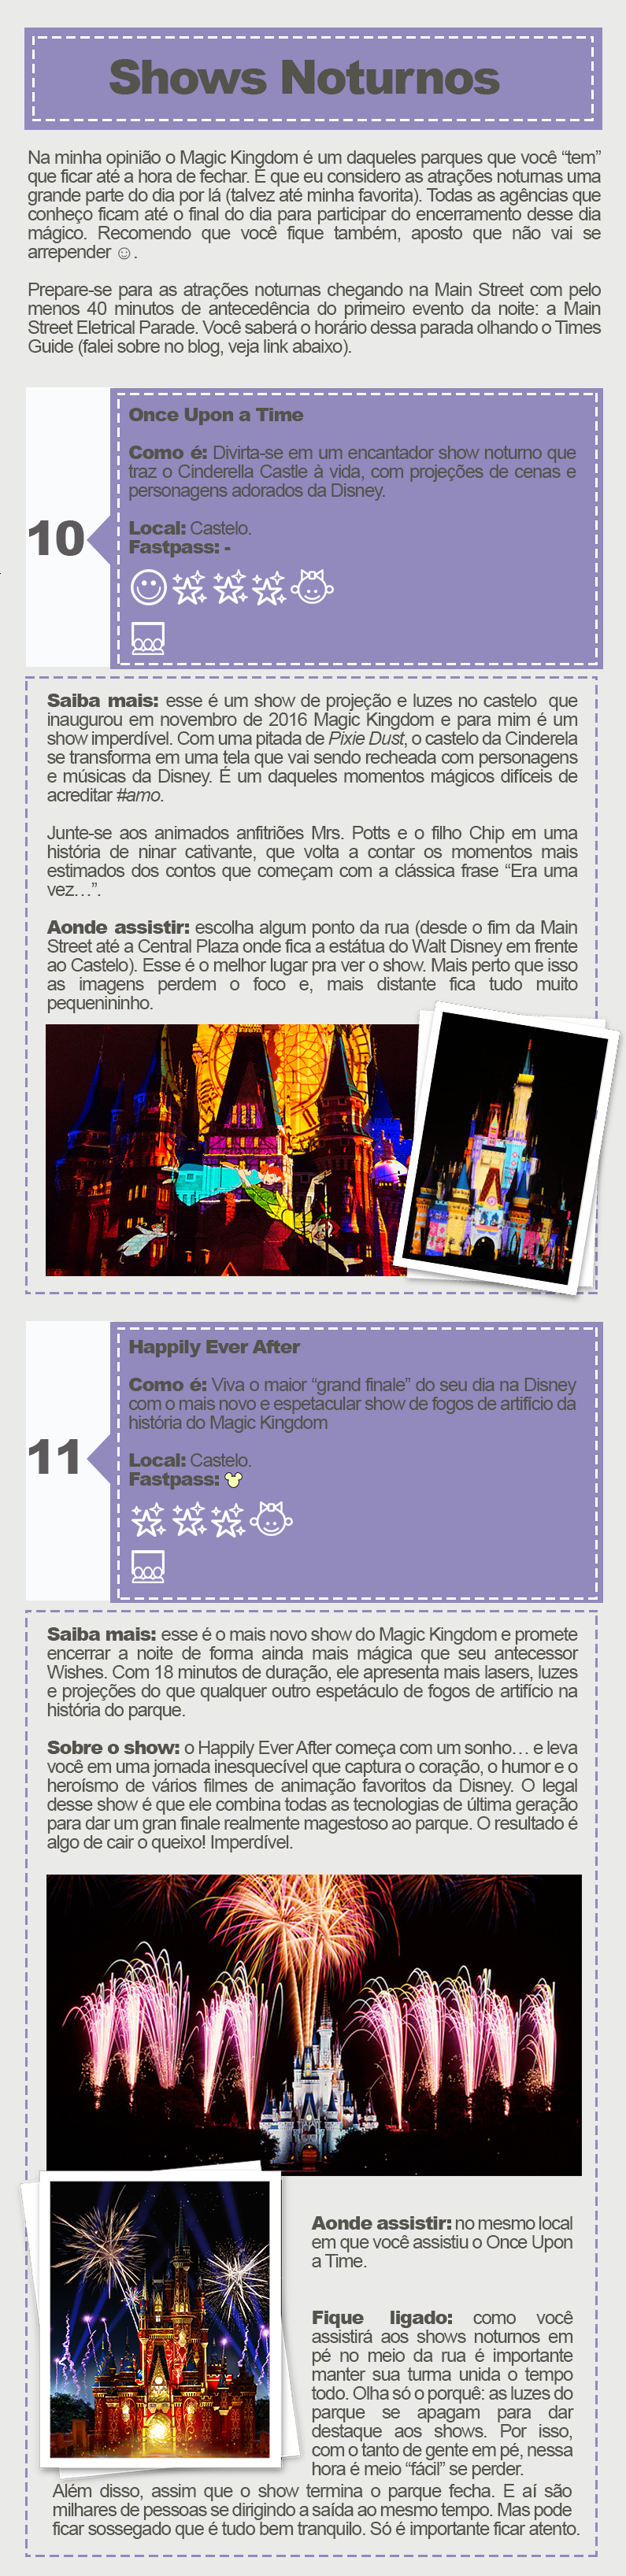 shows-noturnos-magic-kingdom